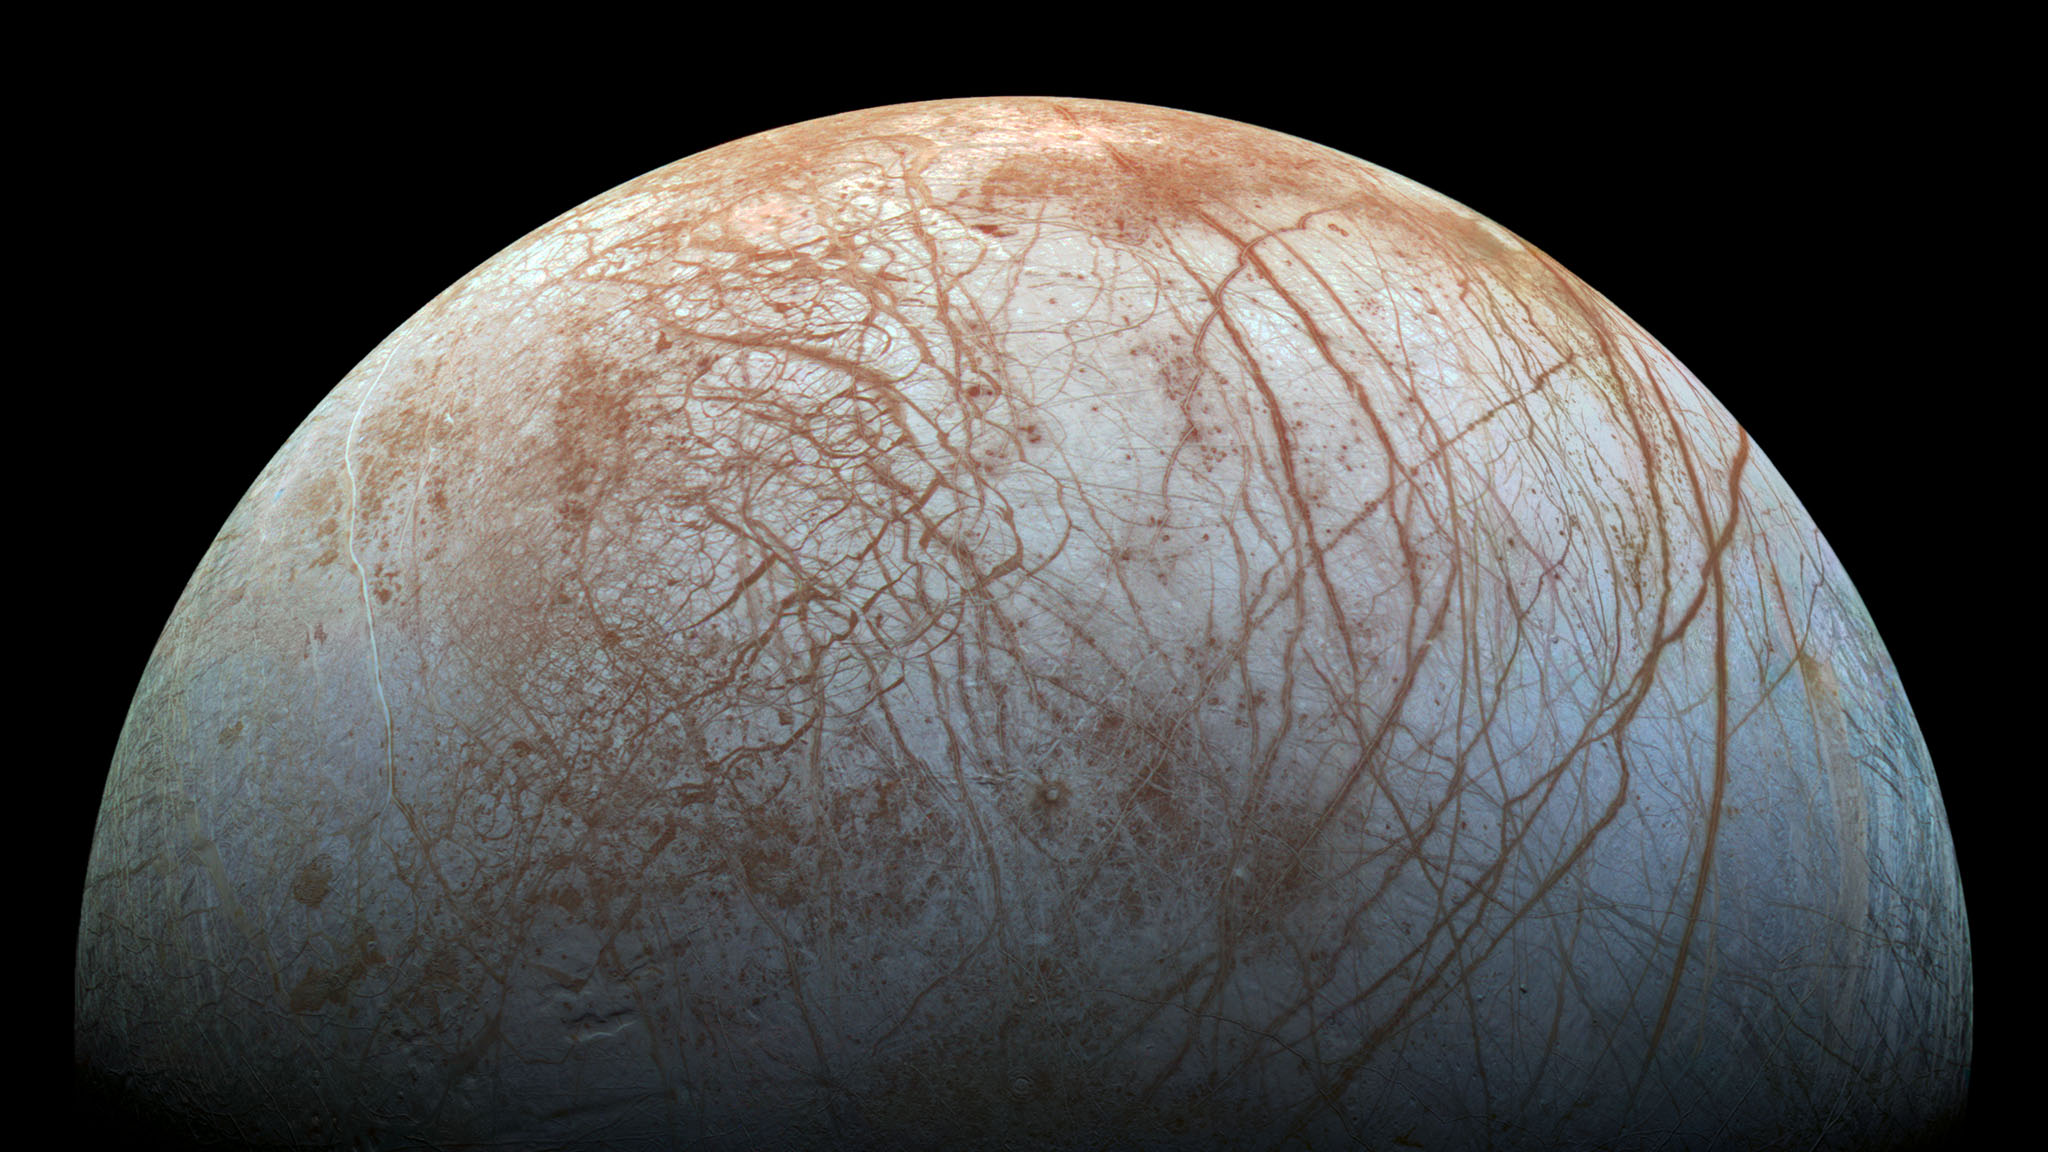 "Composed of images taken by the Galileo spacecraft in 1995 and 1998, this reprocessed image of the icy Jovian moon Europa shows cracks, ridges, ""microchaos,"" and more. We now believe that Europa, like several other moons in the solar system, is an ocean world. Due to heat caused by Jupiter's gravitational push-and-pull, there is liquid salt water beneath the ice, water that may contain life."